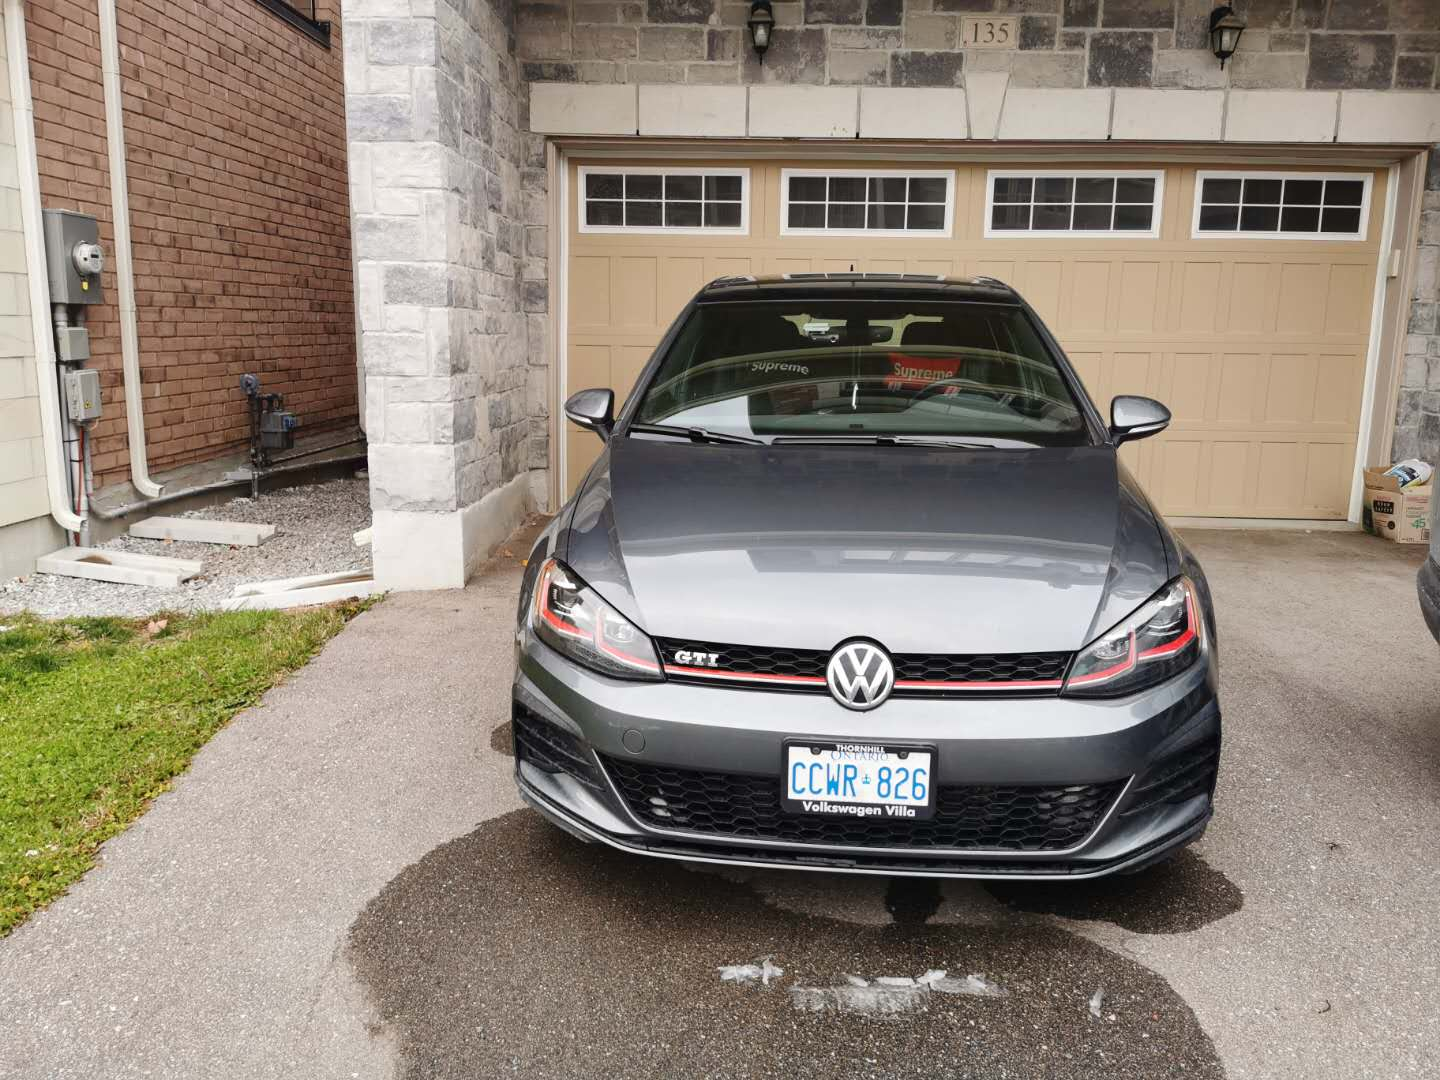 2018 Volkswagen Golf GTI  - INFOCAR - Toronto's Most Comprehensive New and Used Auto Trading Platform